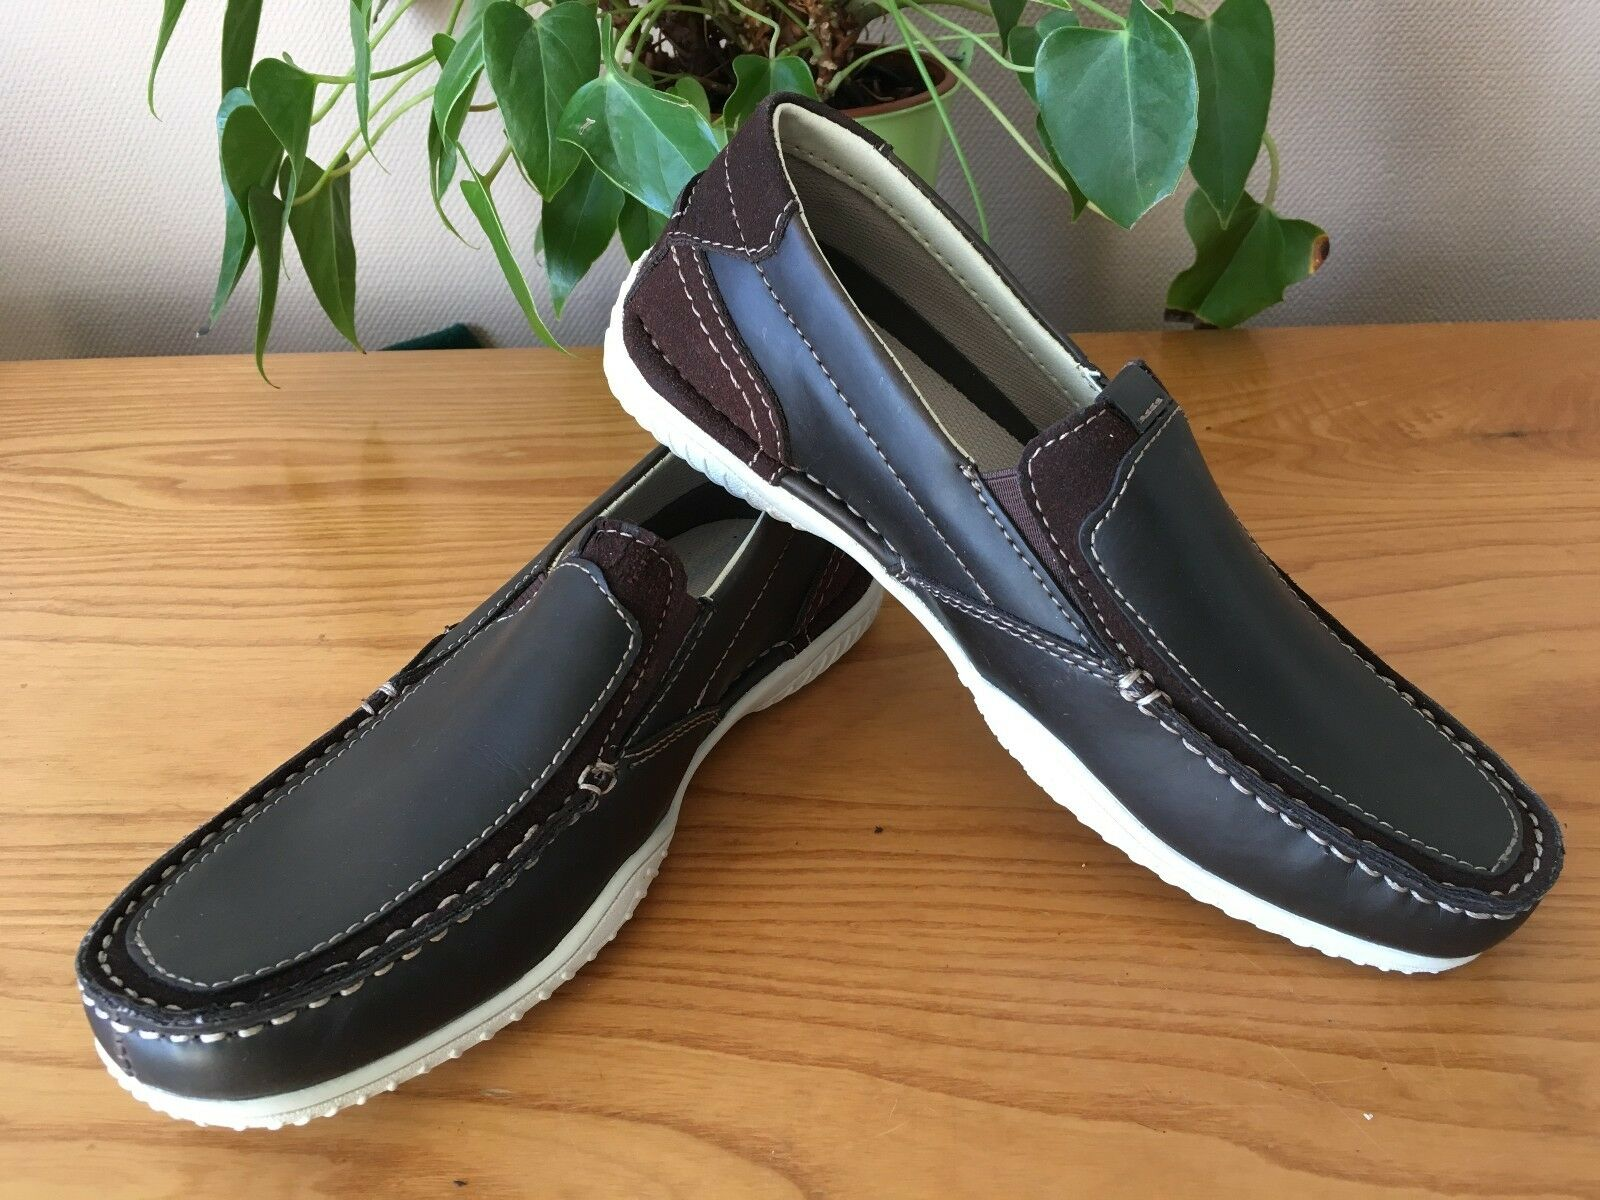 Skechers loafer brown slip on casual loafer Skechers trainer shoes UK 5.5 EU 38.5 New fa9dae